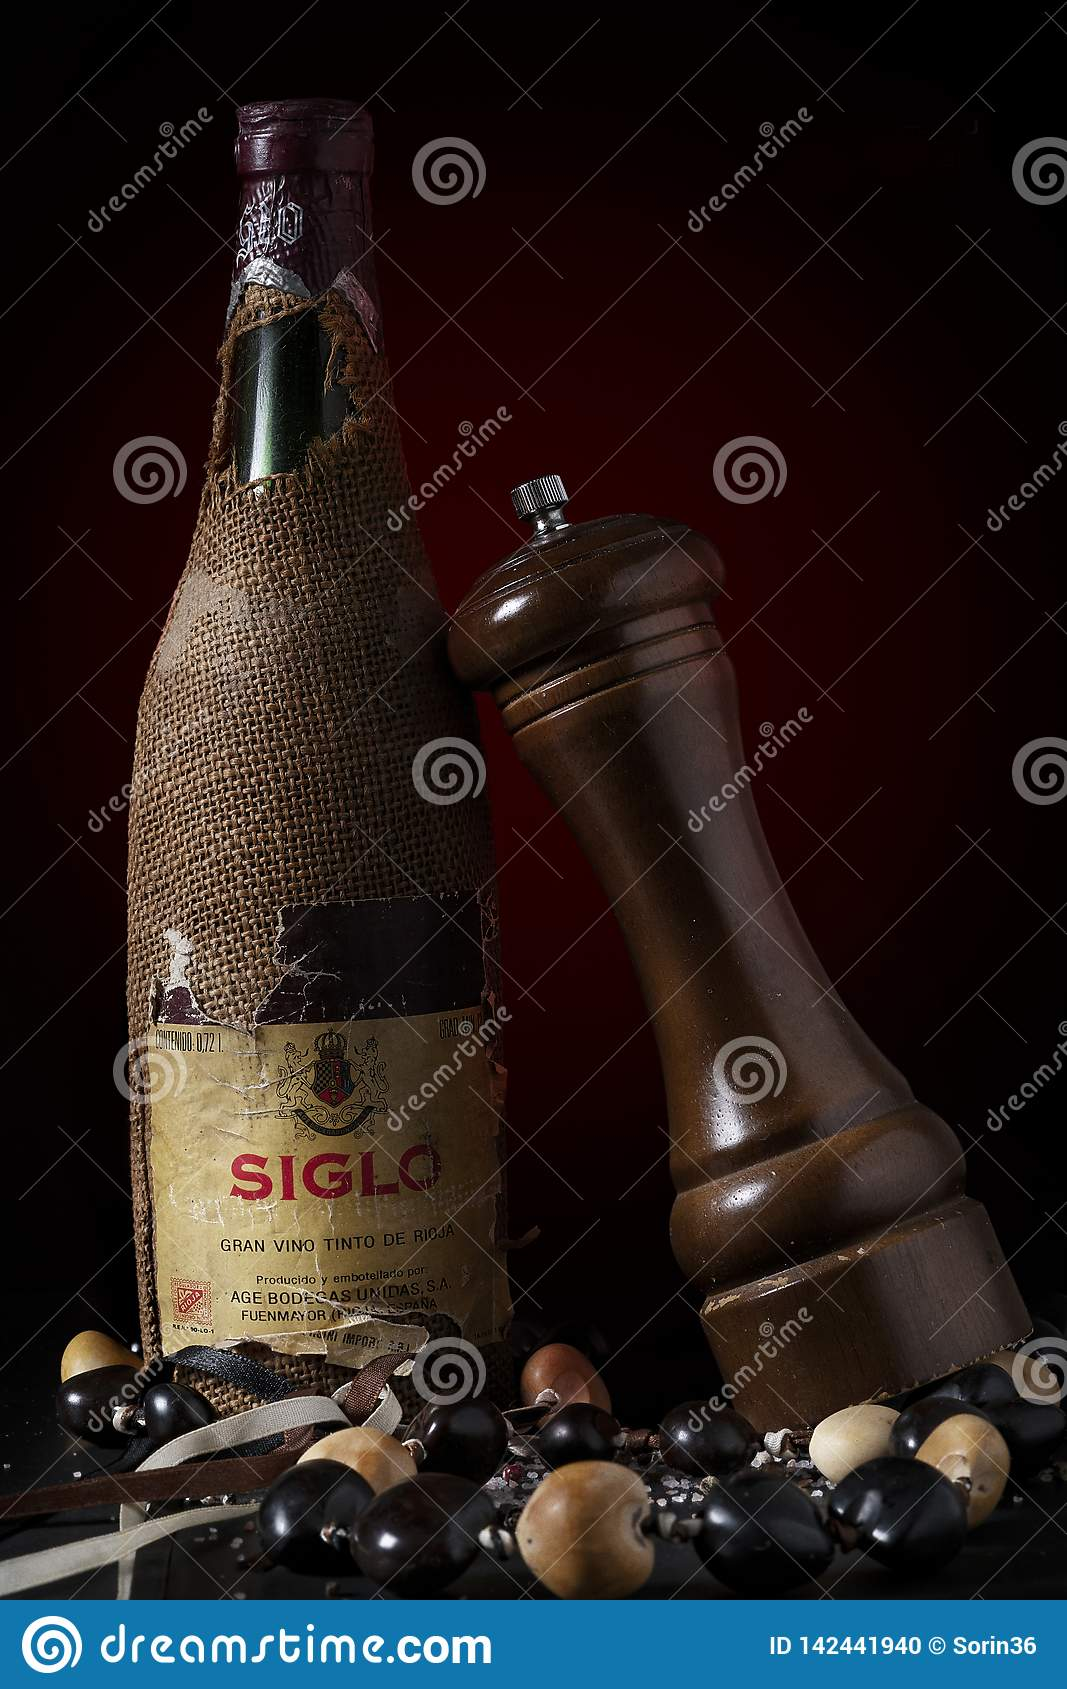 Siglo a delectable fruit wine